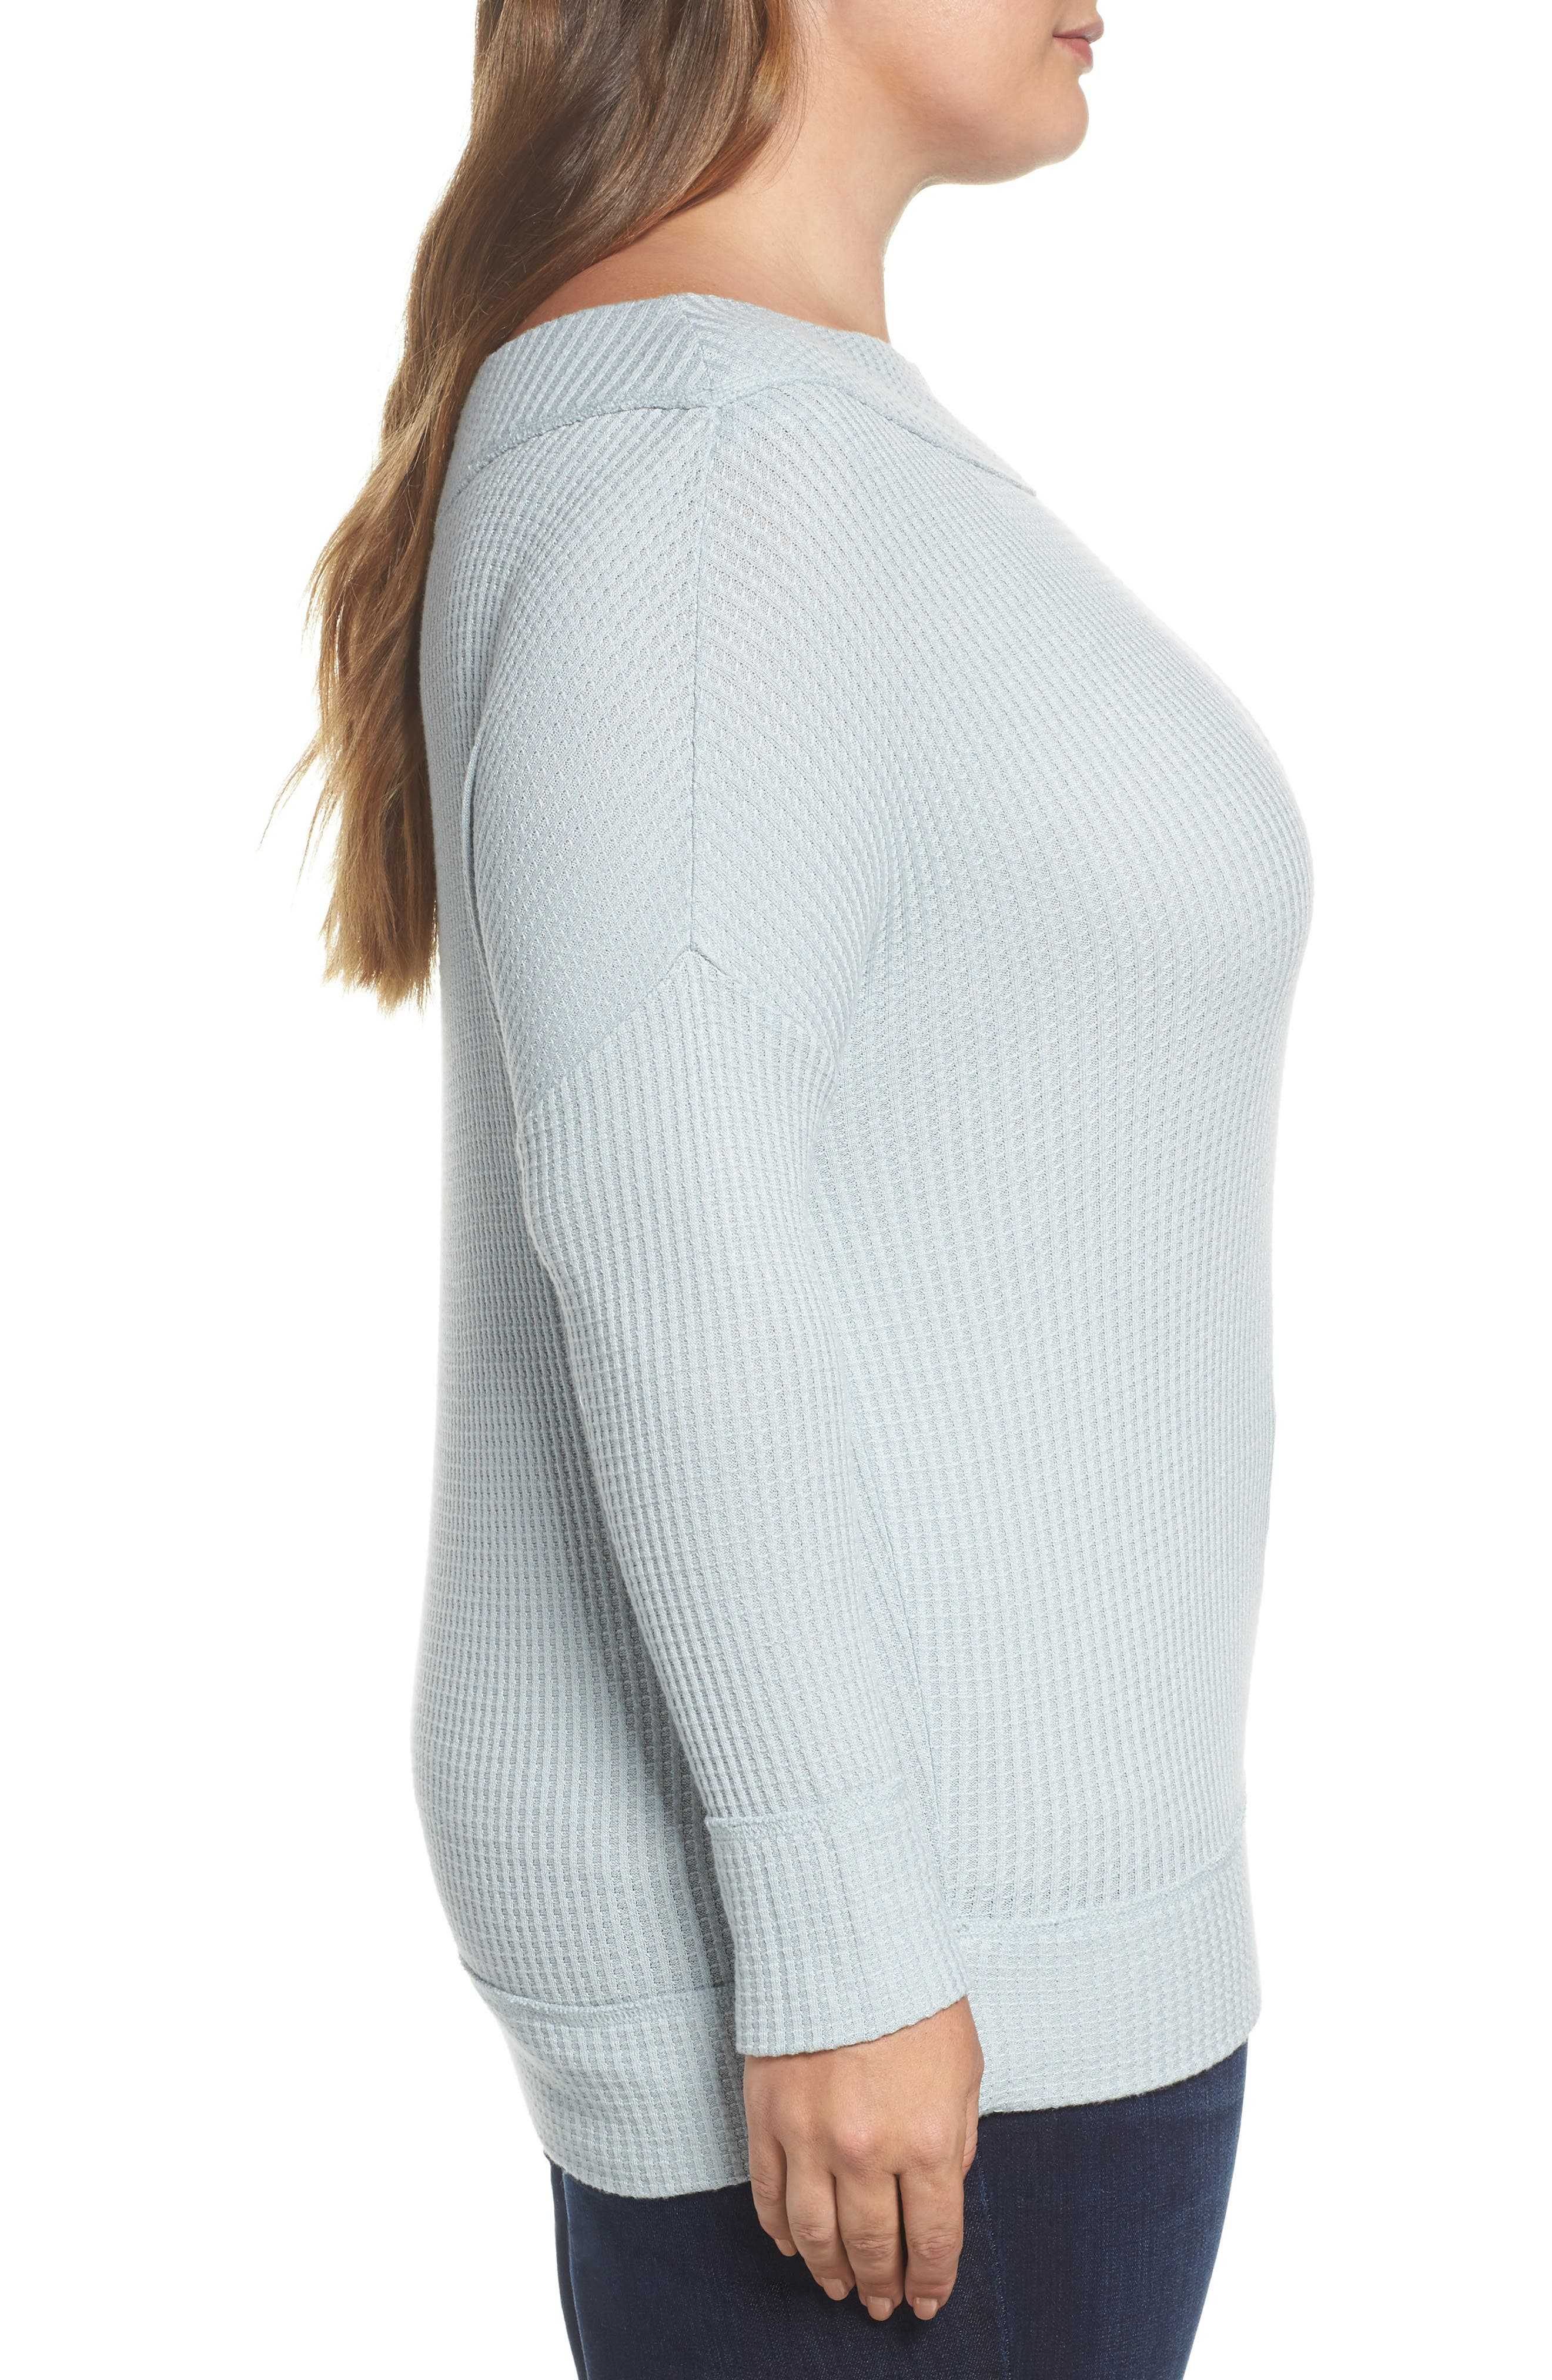 Waffle Thermal Top,                             Alternate thumbnail 3, color,                             430